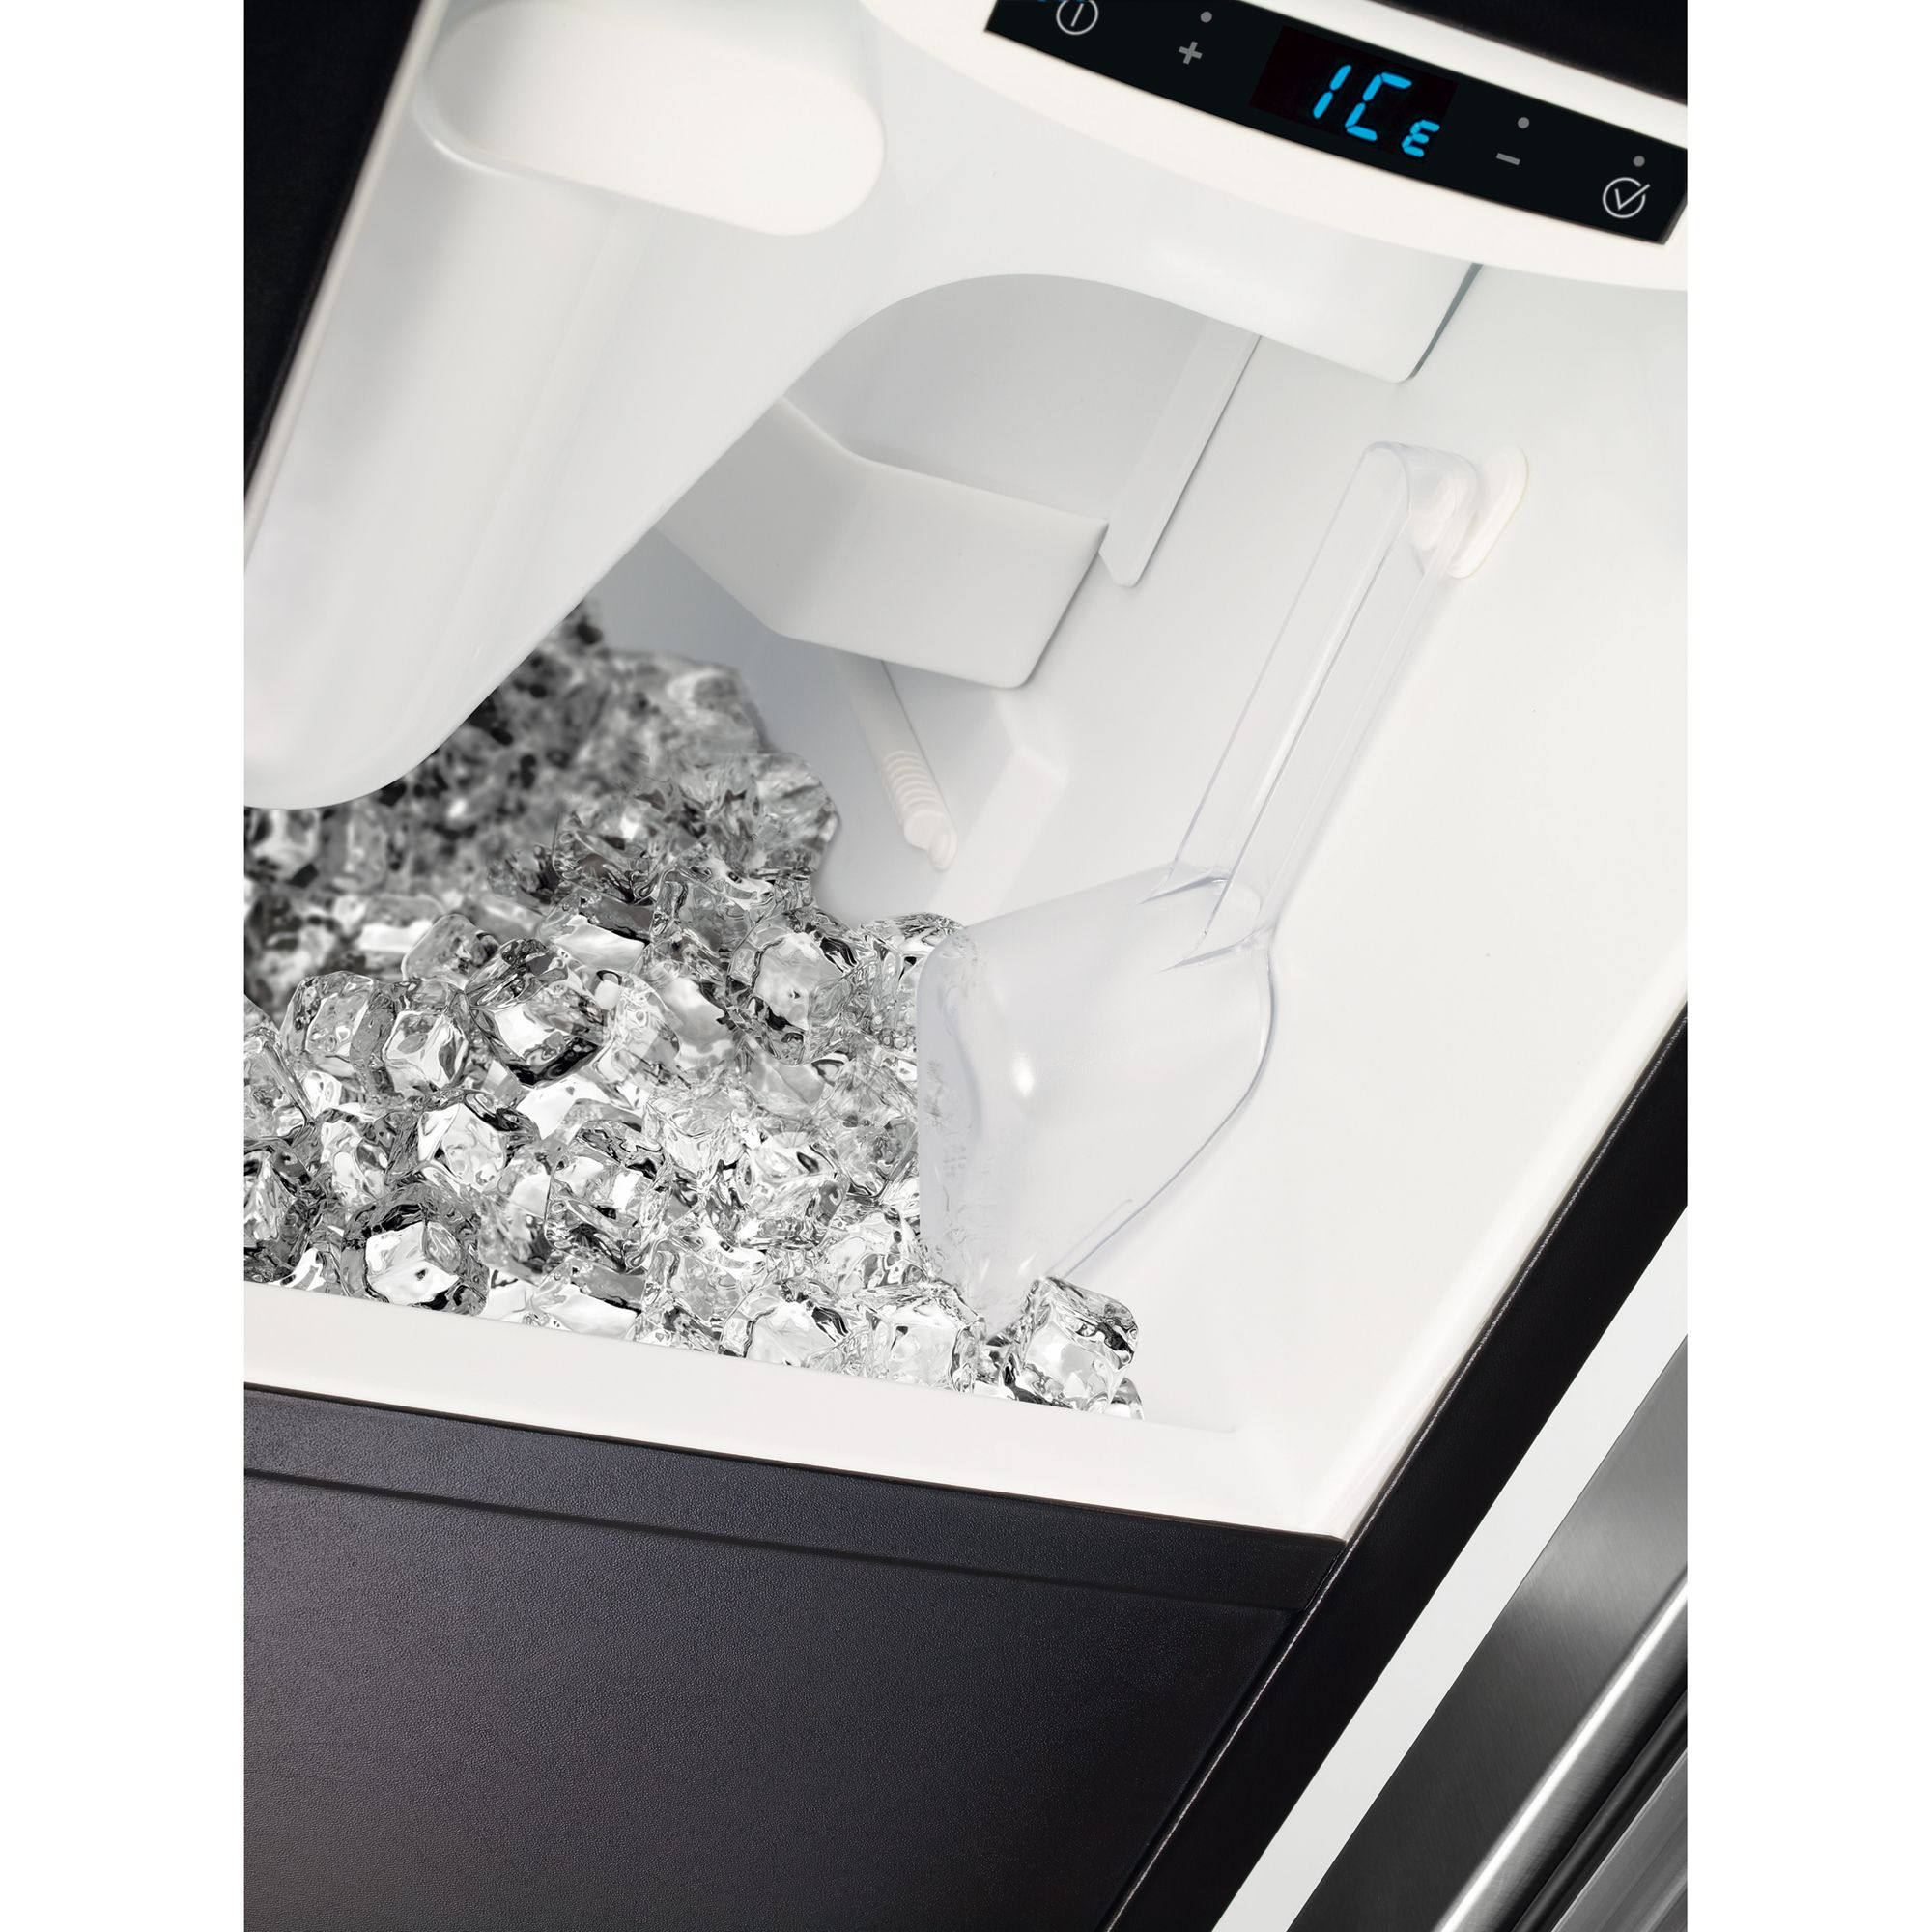 Electrolux 15 in. Ice Maker Freezer & Ice Maker  - Stainless Steel